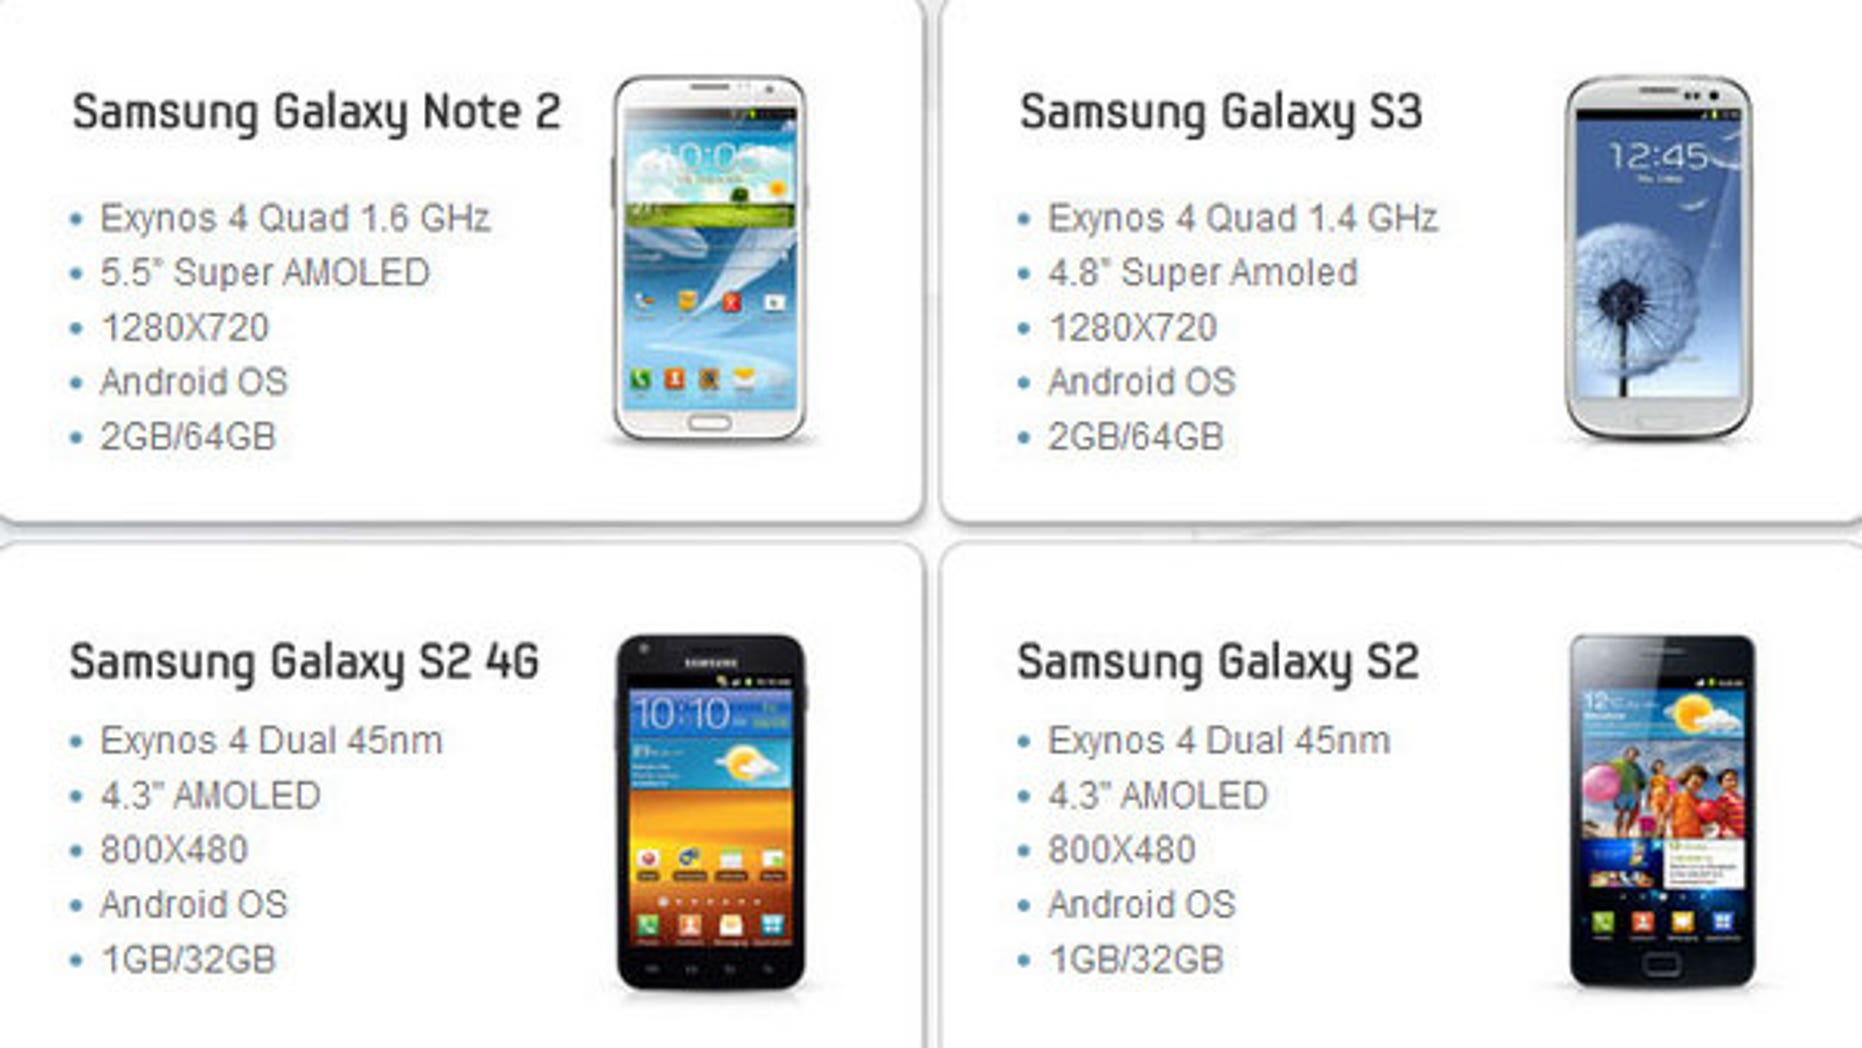 Some of the devices that use Exynos 4 Quad and Exynos 4 Dual 45nm chips, according to a Samsung showcase Web page.